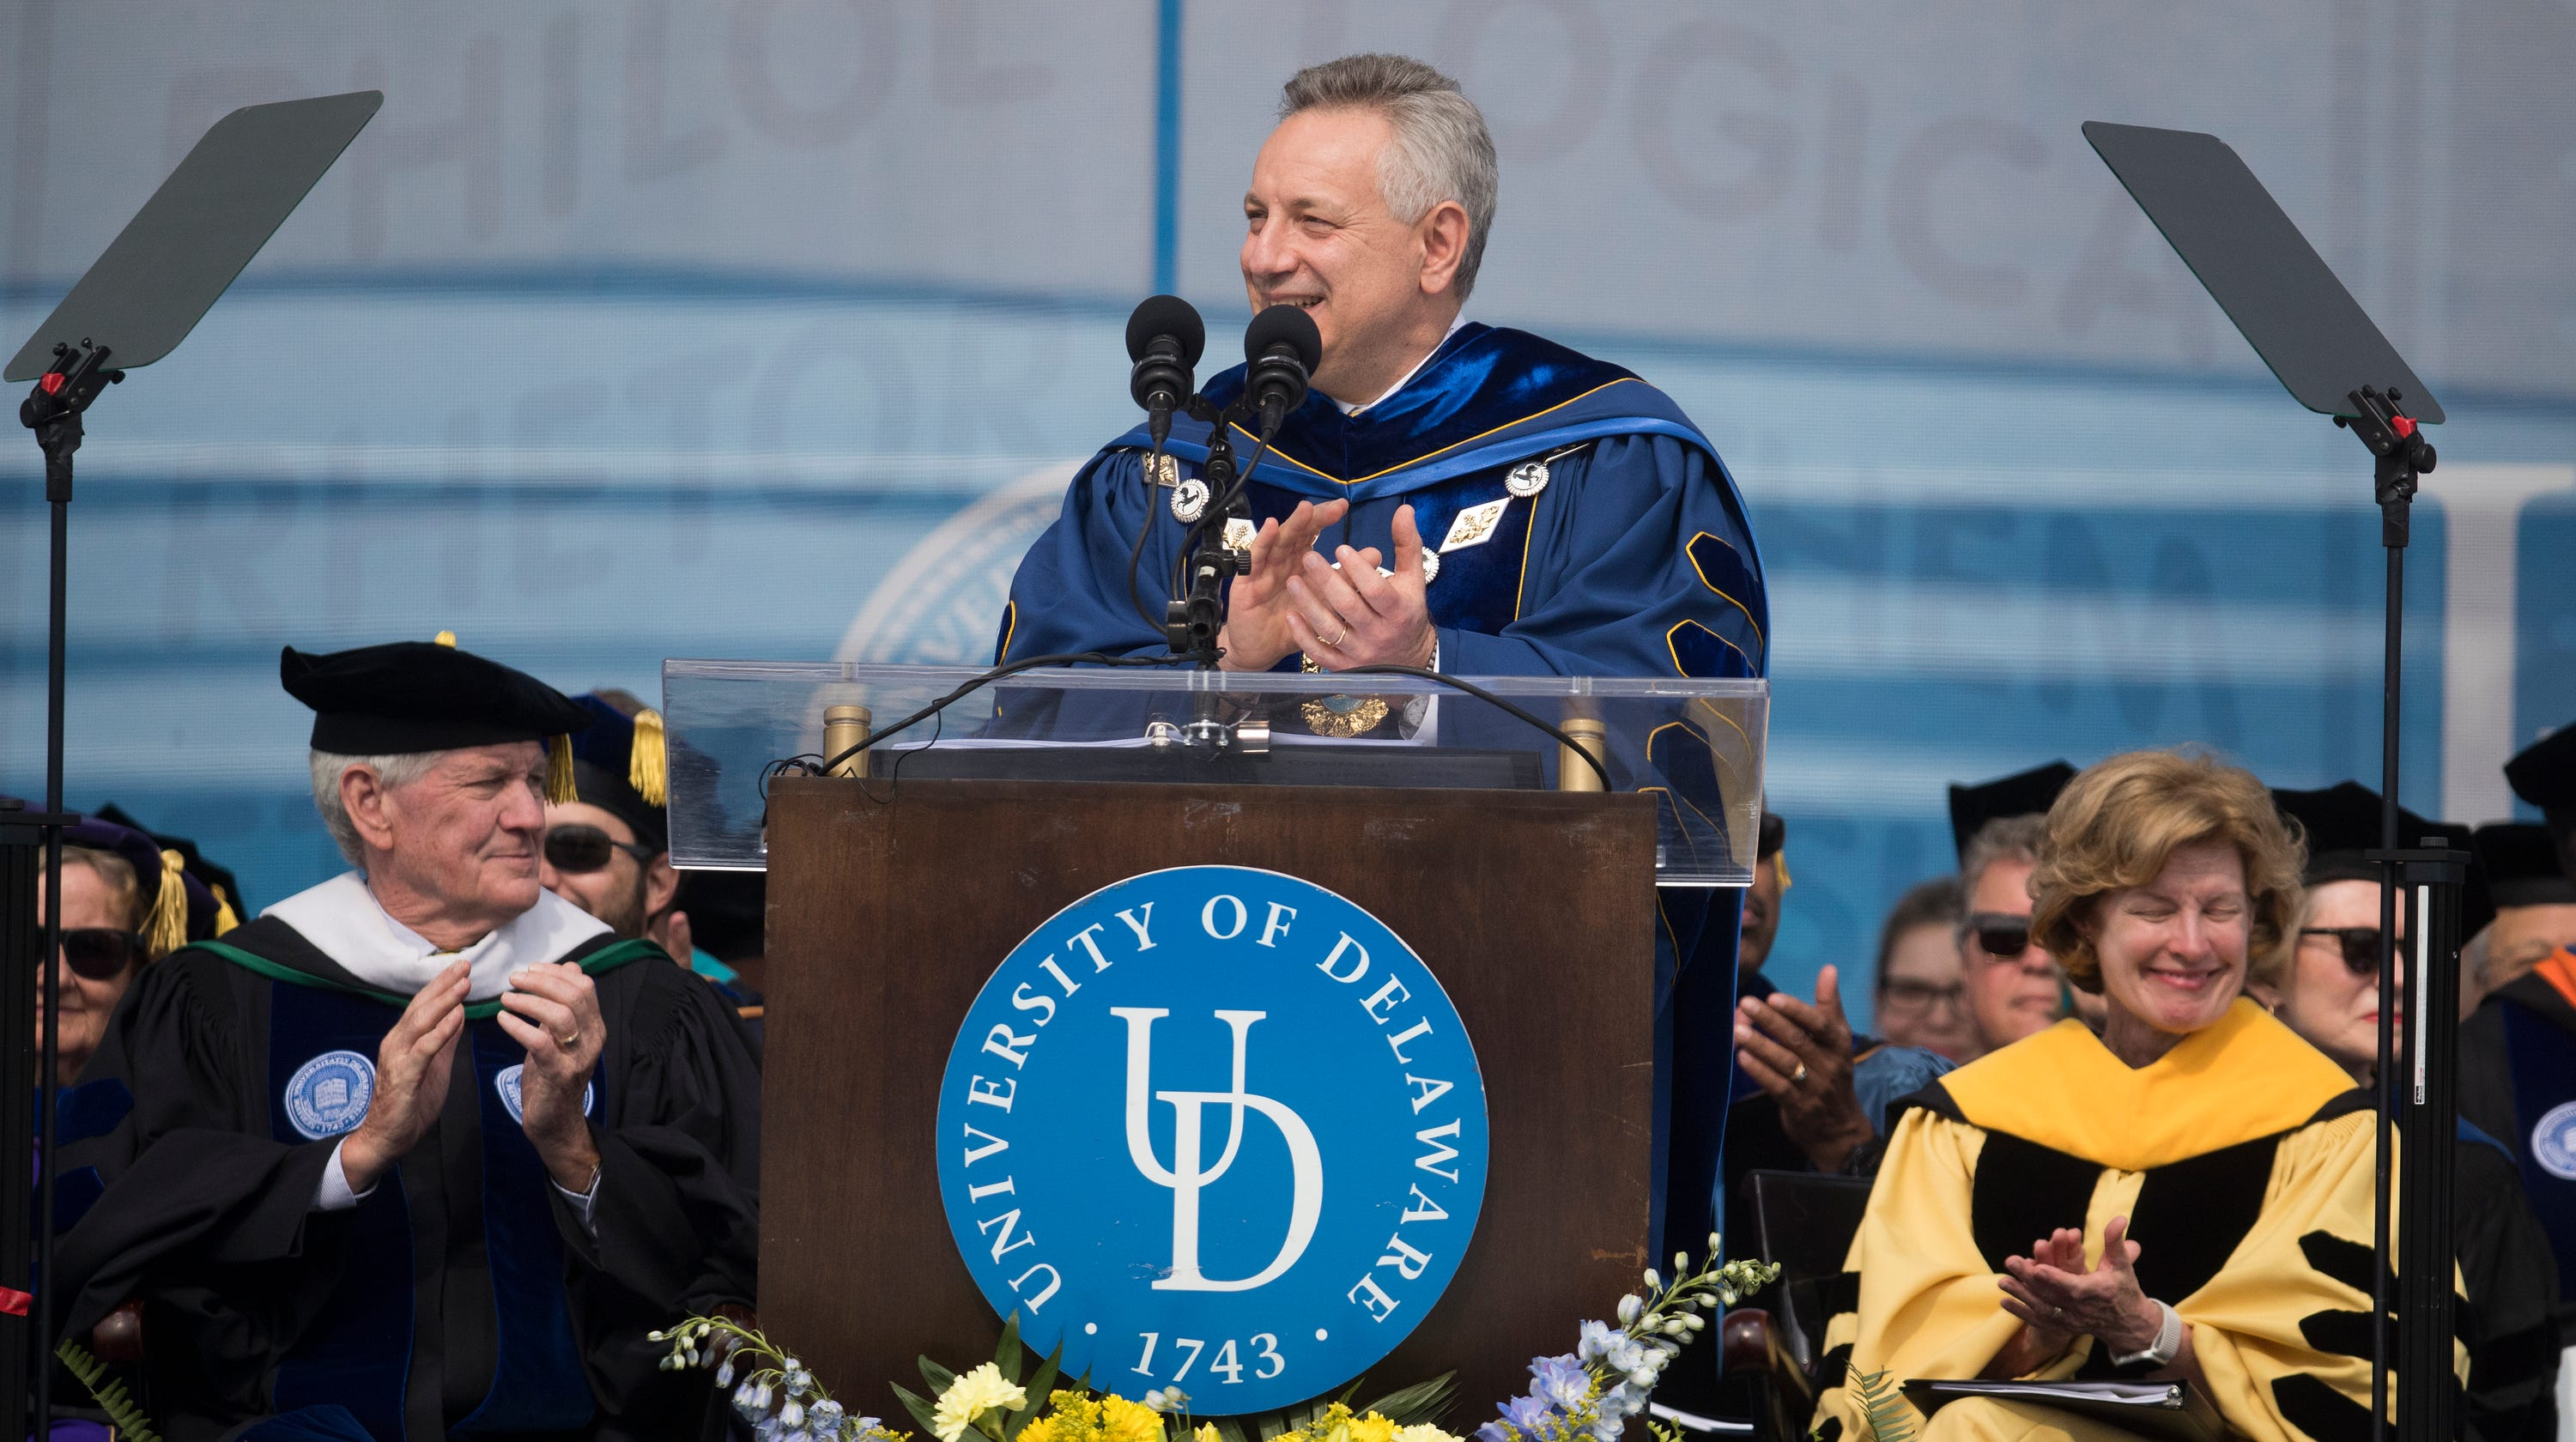 Fit Graduation 2020.University Of Delaware Raises Tuition Ahead Of The 2019 2020